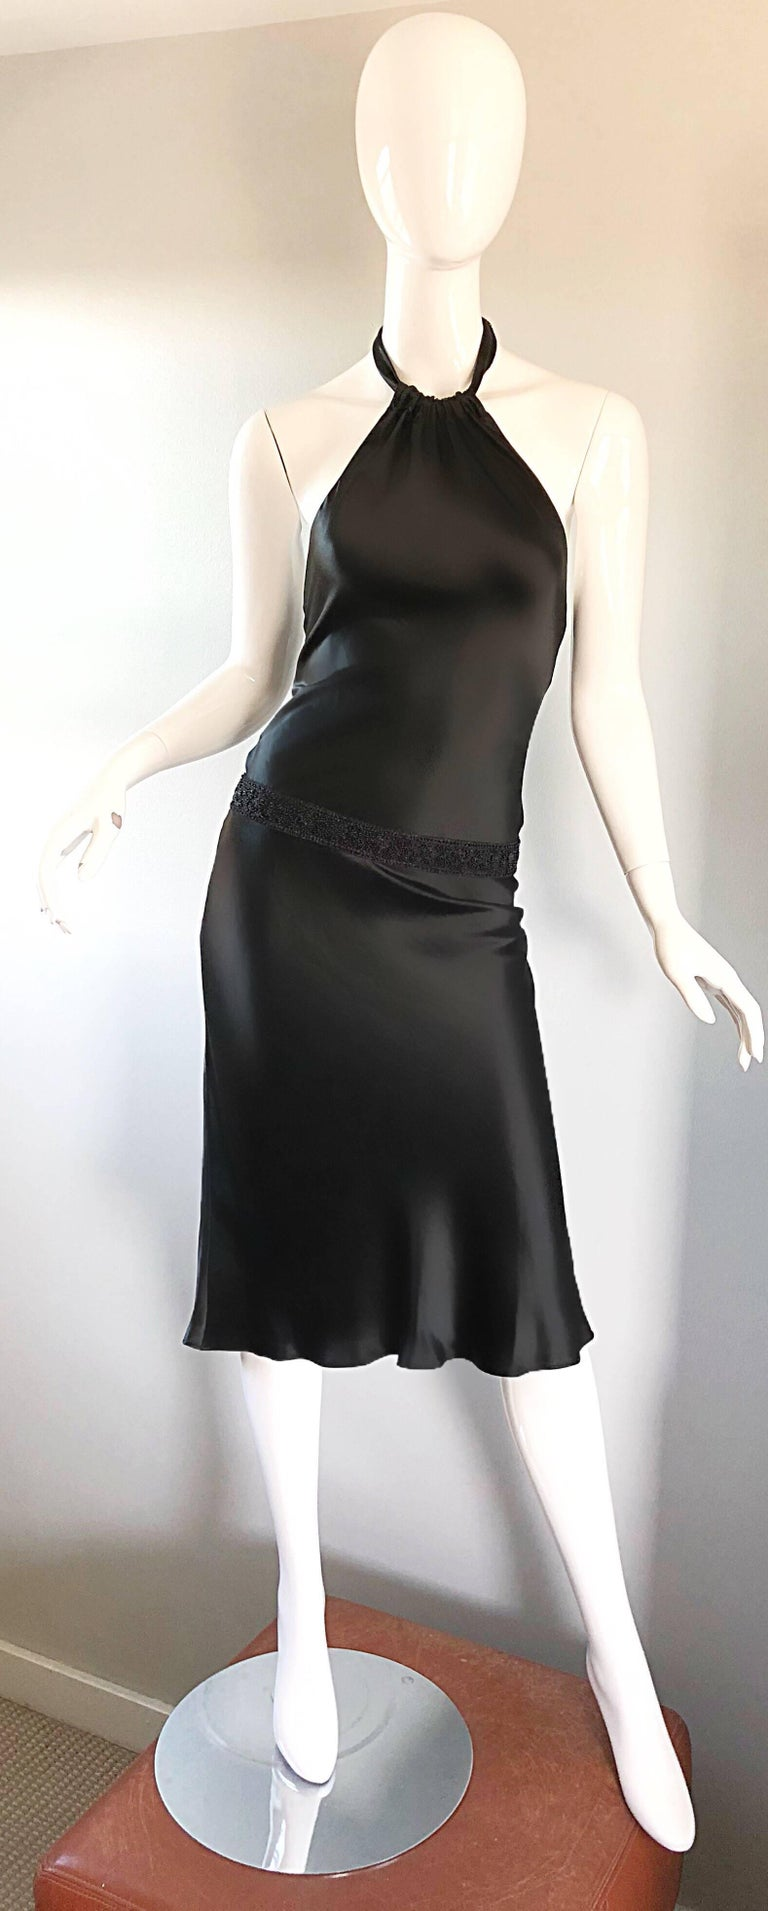 Striking 1990s VERA WANG black slinky beaded halter dress! Features a lovely silhouette that flatters an array of body shapes. Slightly dropped beaded waist gives an ode to the 20s. Hidden zipper up the side with hook-and-eye closure. Halter ties at